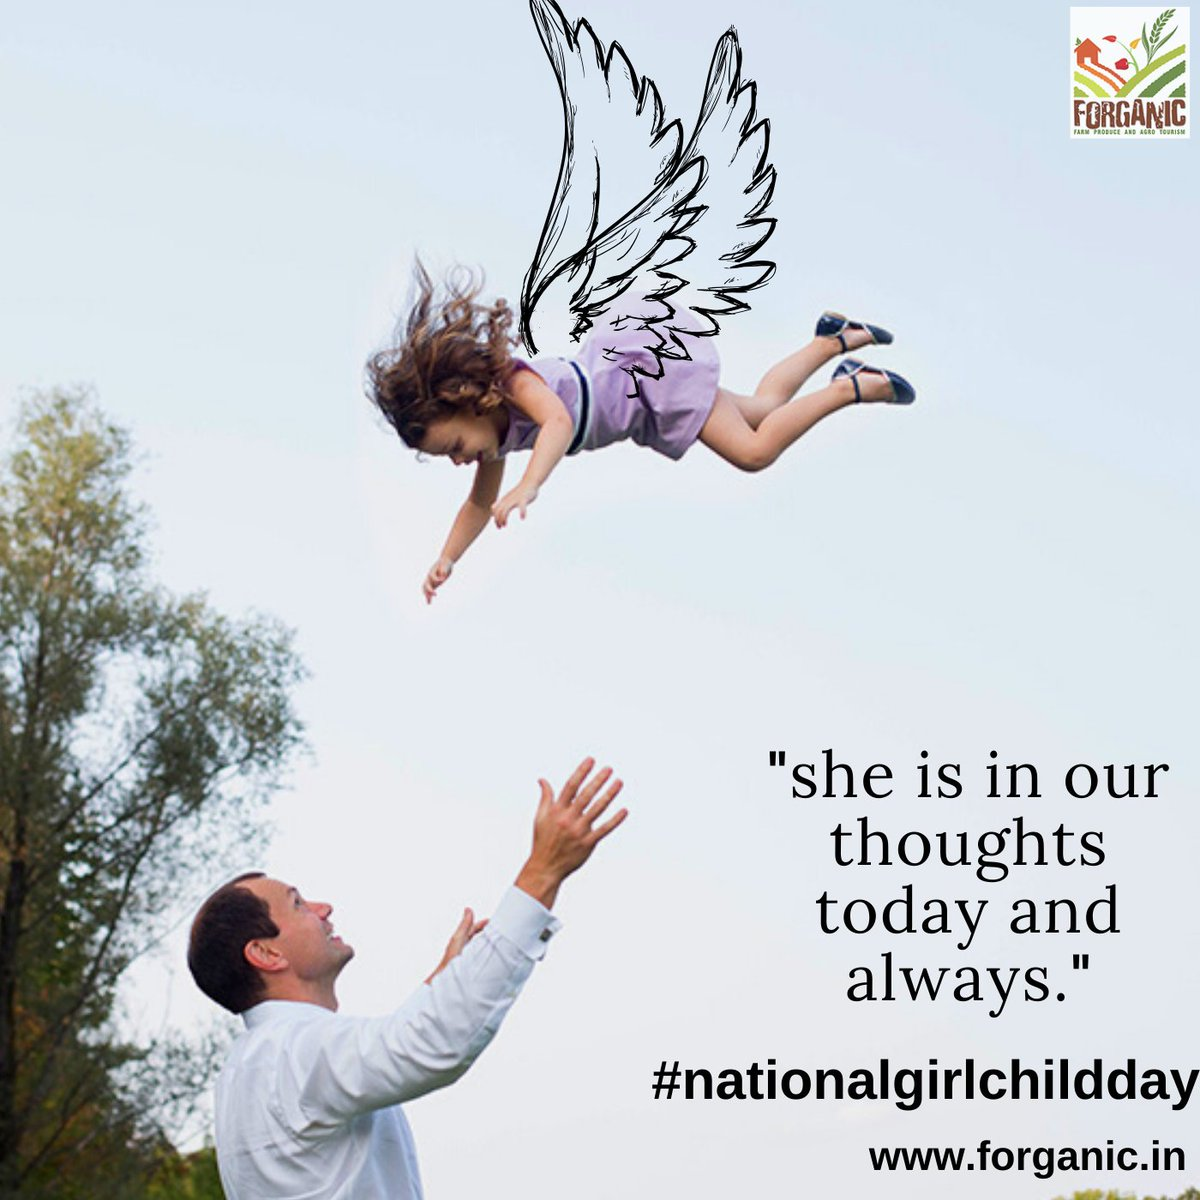 She is a dreamer, let her spread her wings! Happy National Girl Child Day https://t.co/nHkCBmHv2G . . #nationalgirlchildday #girlchild #education #women #girls #love #india #support #girlpower #awareness #Knowledge #Learning #forganicexperience #Forganic #Khopoli #mumbai #pune https://t.co/ZQHBpOx2Tu